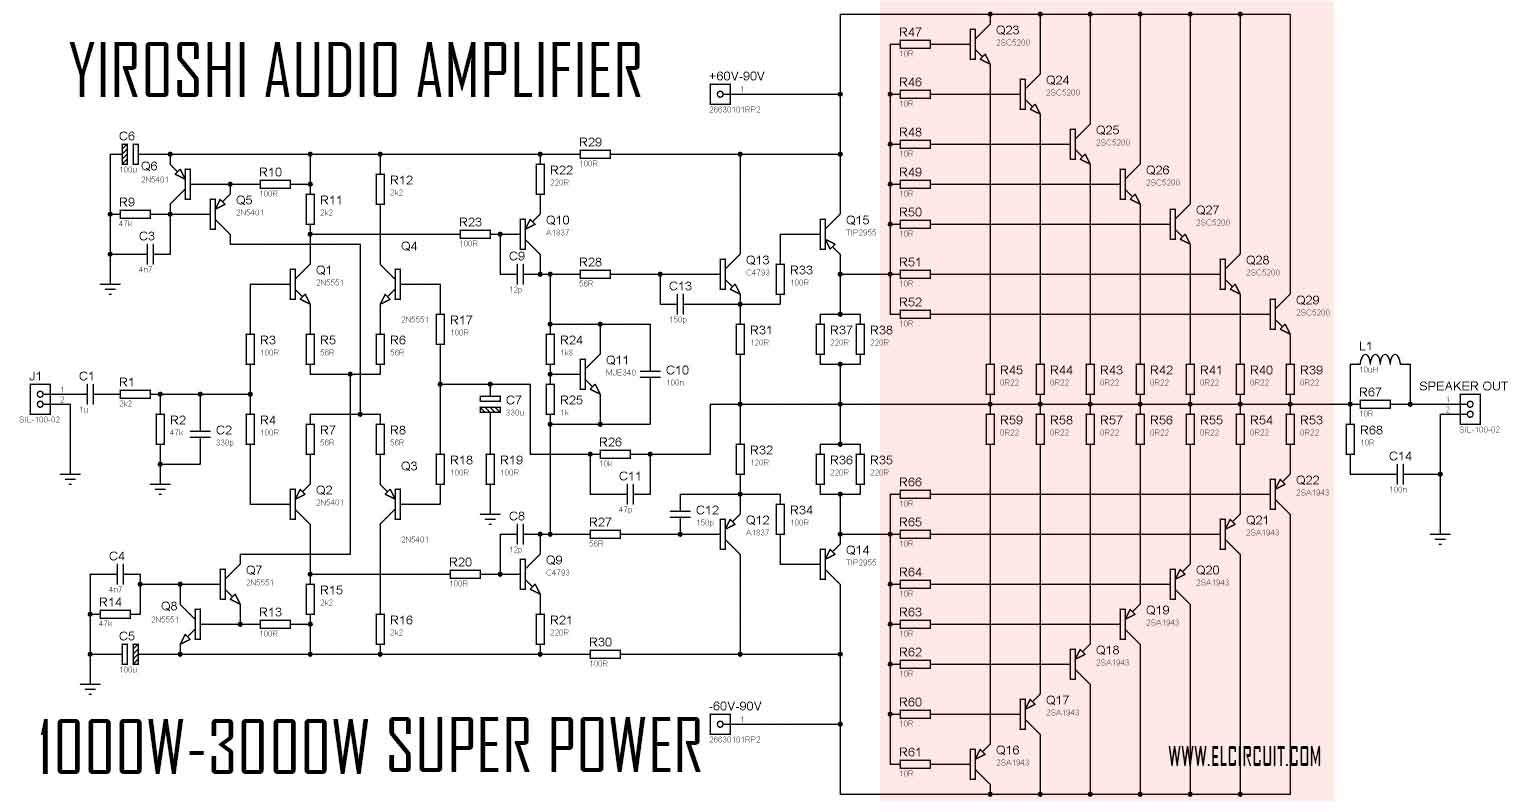 Super Power Amplifier Yiroshi Audio 1000 Watt Trong 2018 Ampli Active Crossover Wiring Diagram Circuit